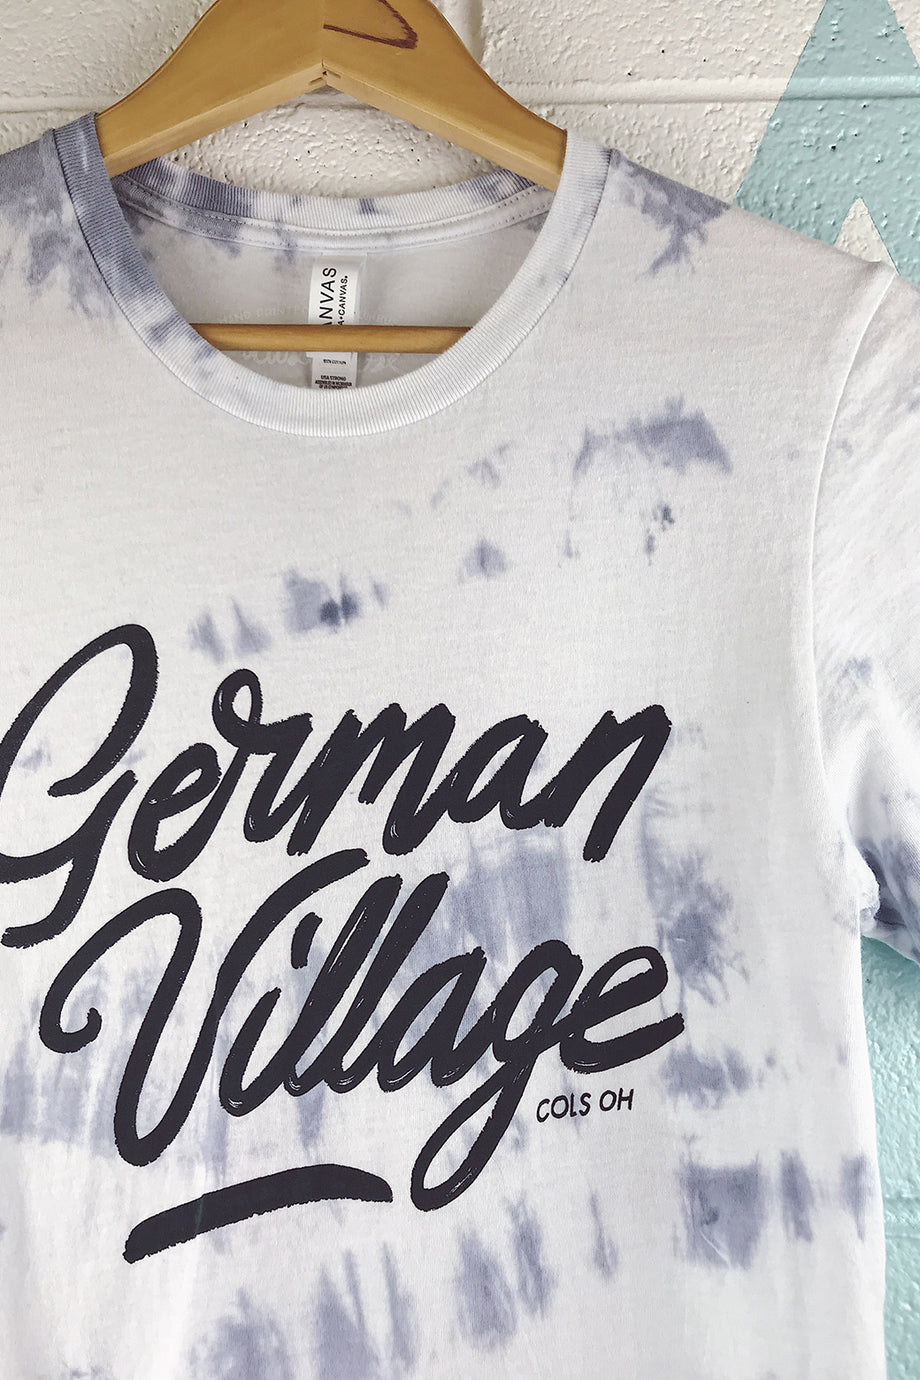 German Village Neighborhood Tie Dyed Mens T-shirt